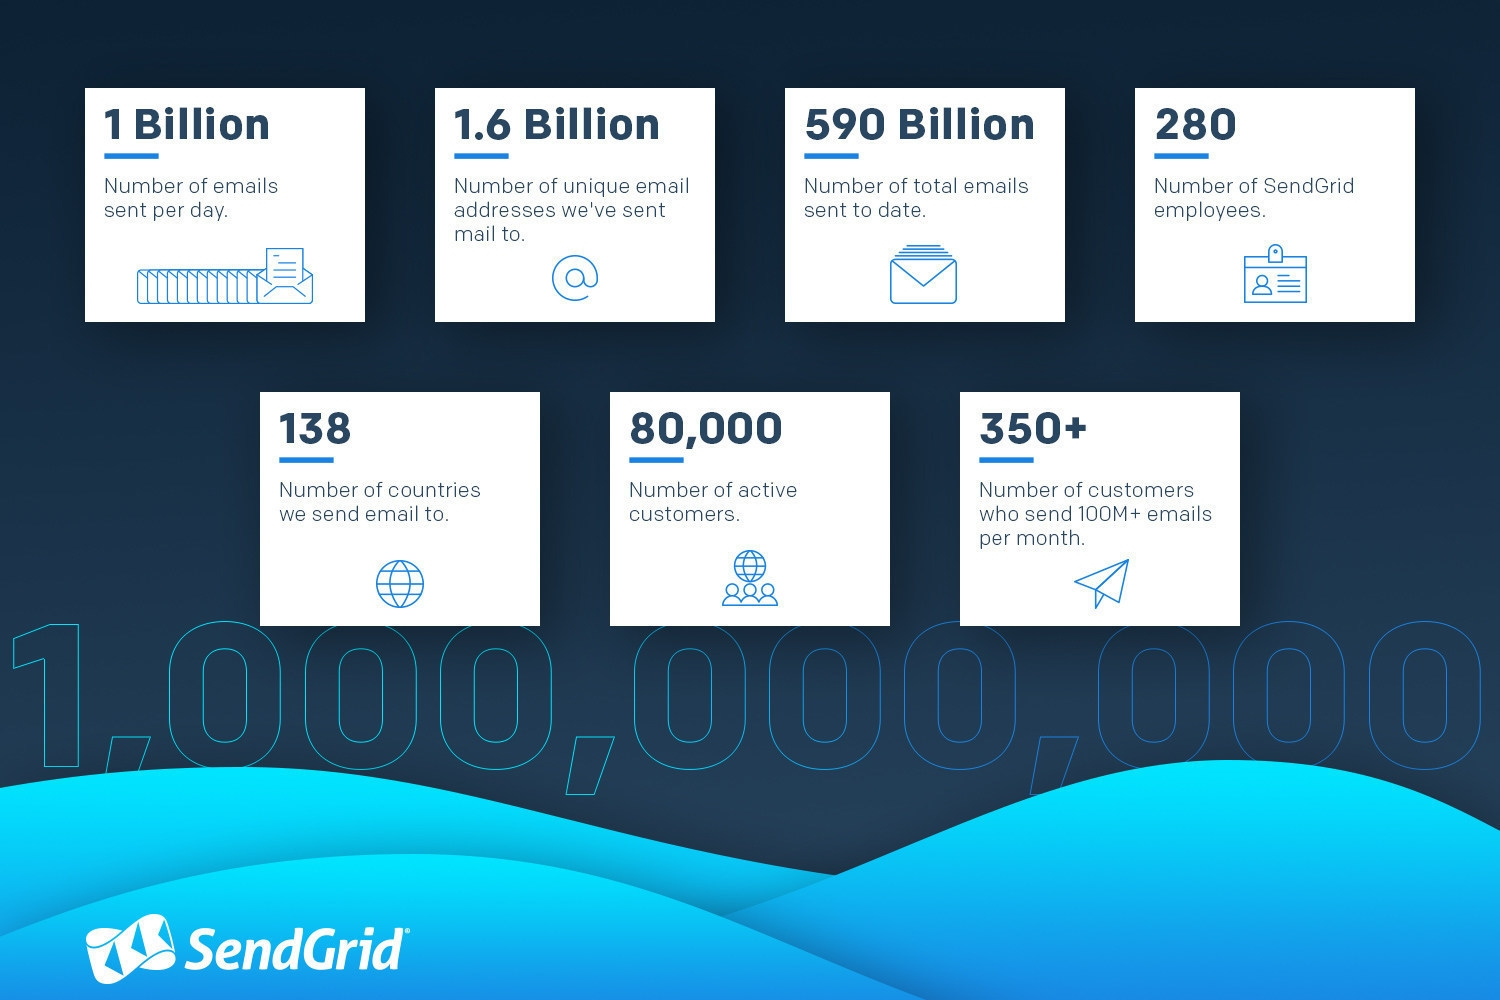 SendGrid reaches 1B per day